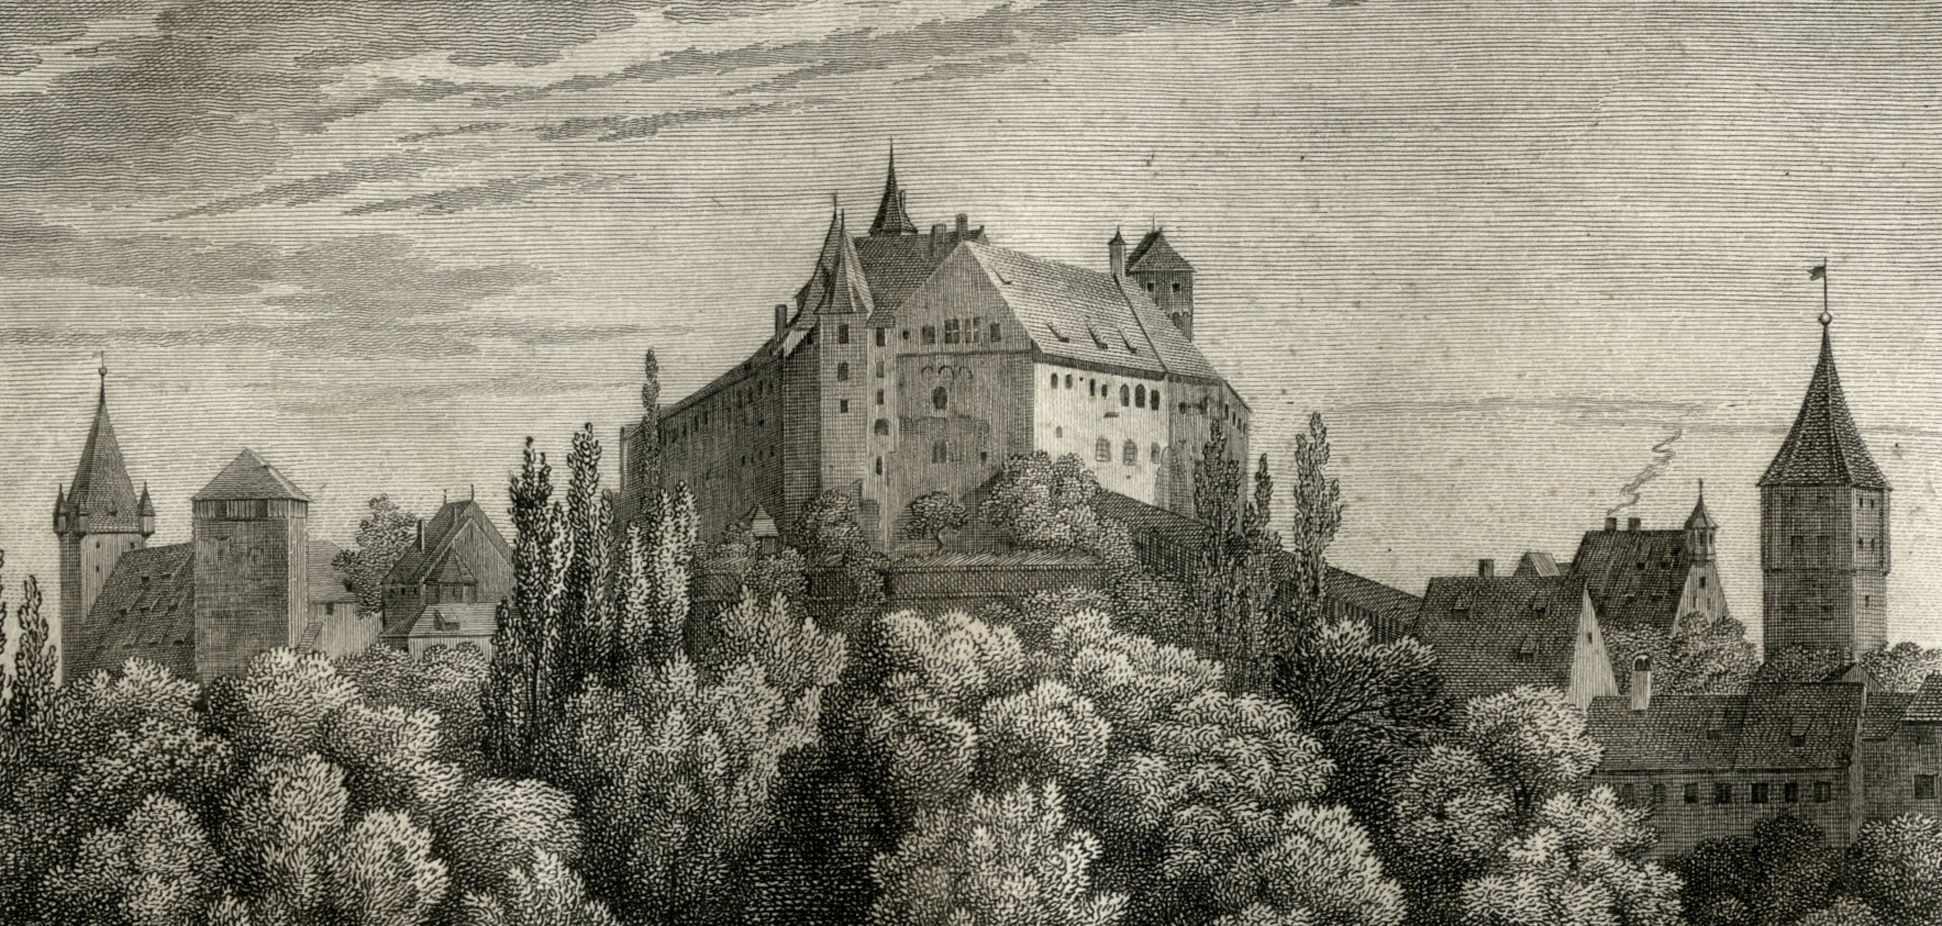 View of the Nuremberg Castle Upper half of the picture